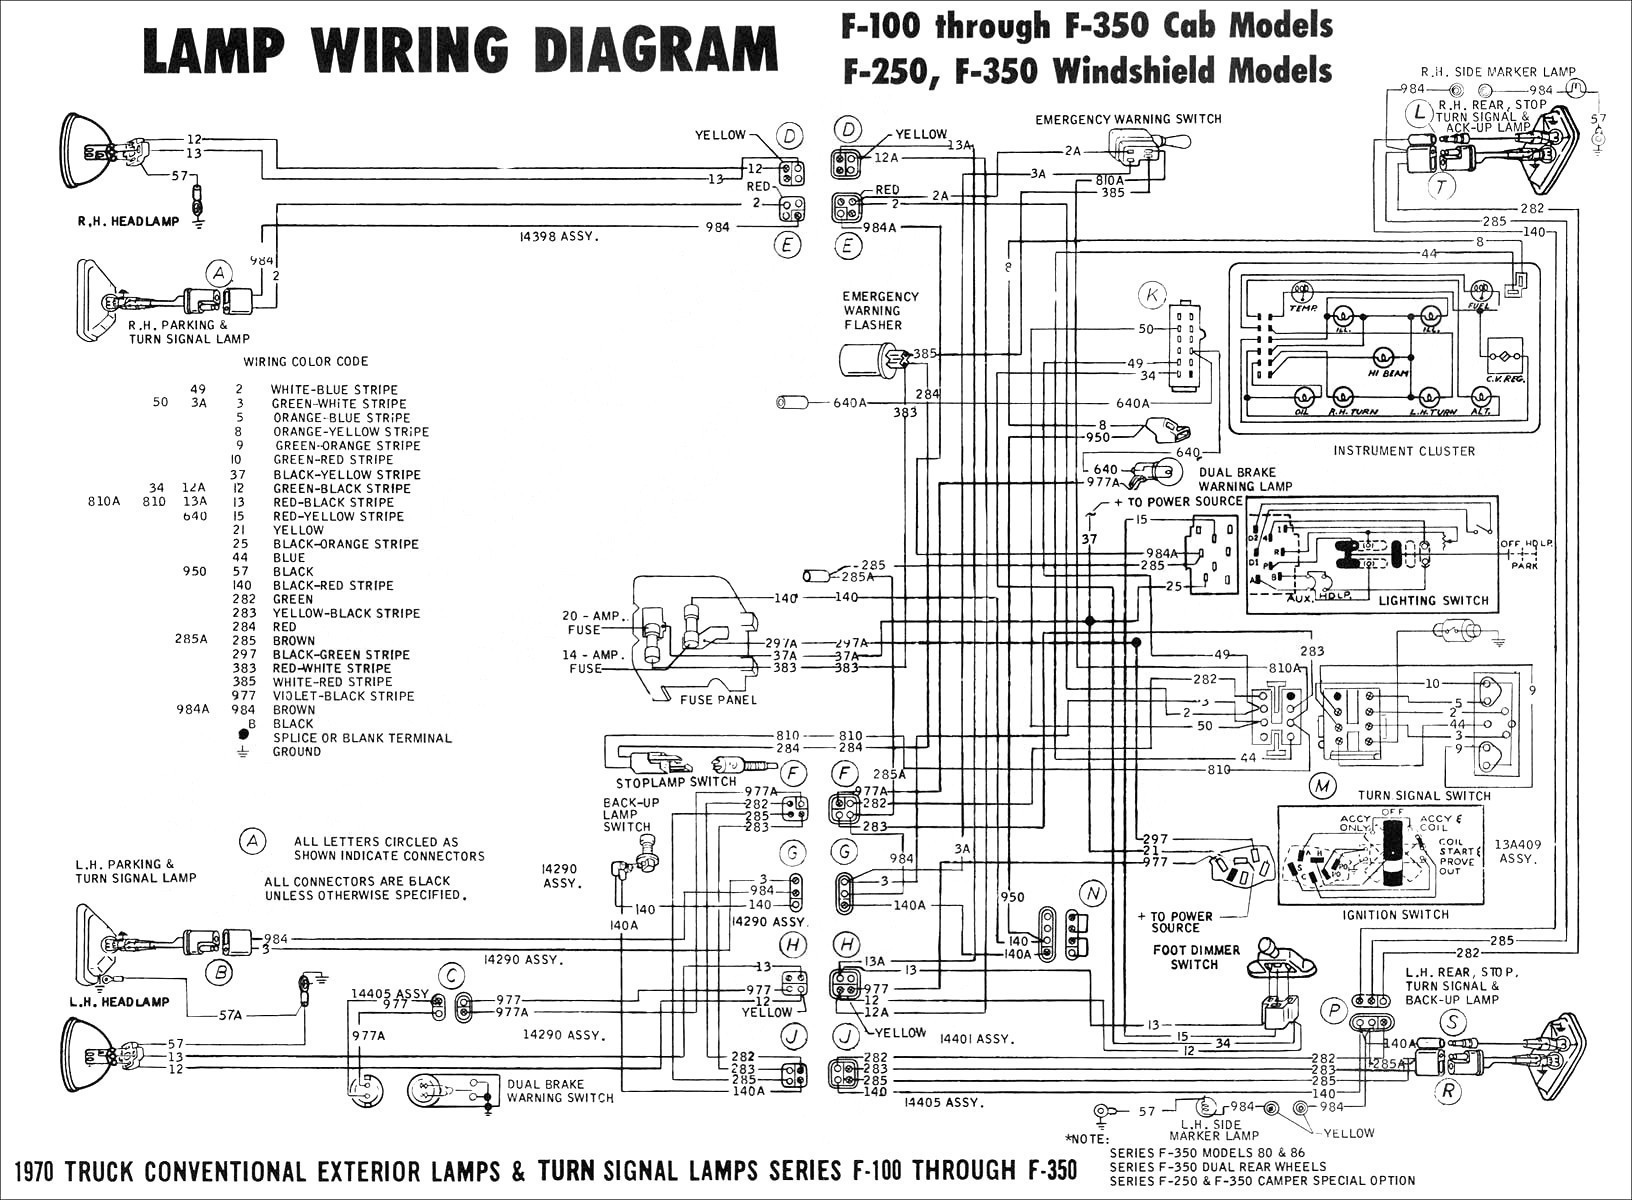 2010 tacoma fuse diagram wiring schematics diagram rh enr green com 2013  Tacoma Wiring Diagram 2009 Corolla Trailer Wiring Diagram